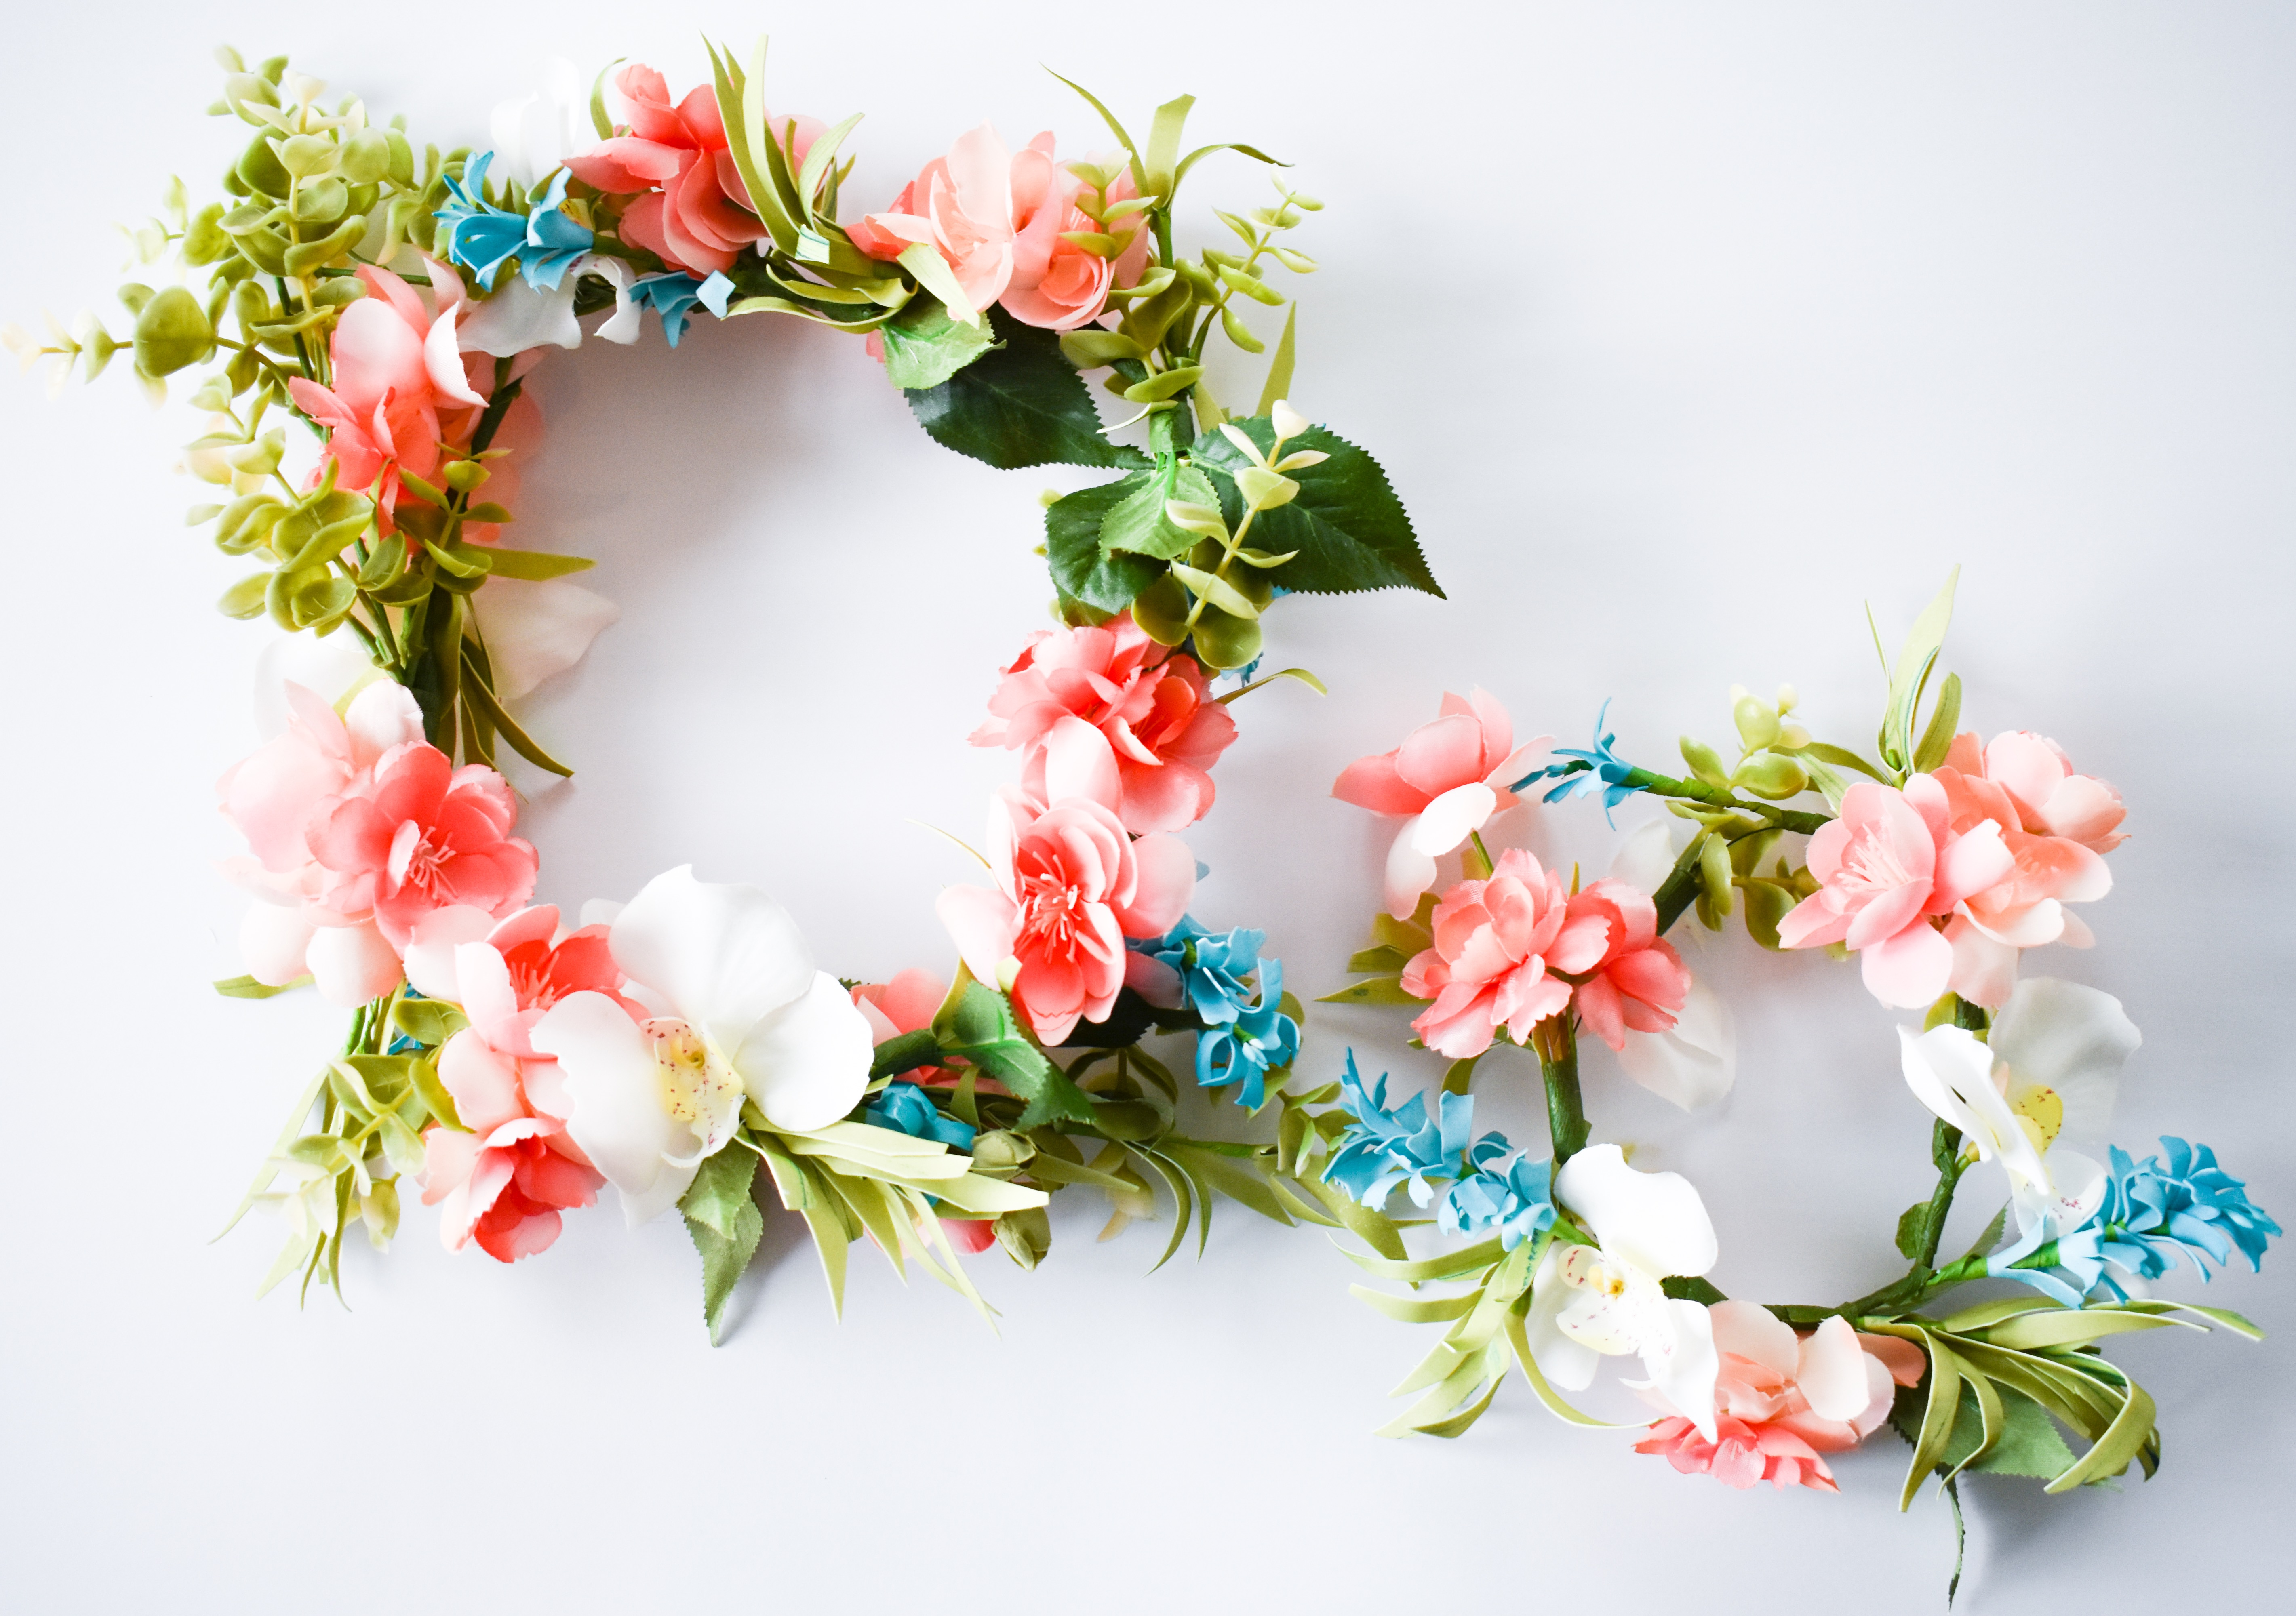 How to make a flower crown with fake flowers easy diy tutorial how to make a flower crown with fake flowers easy diy tutorial mamabops dhlflorist Choice Image